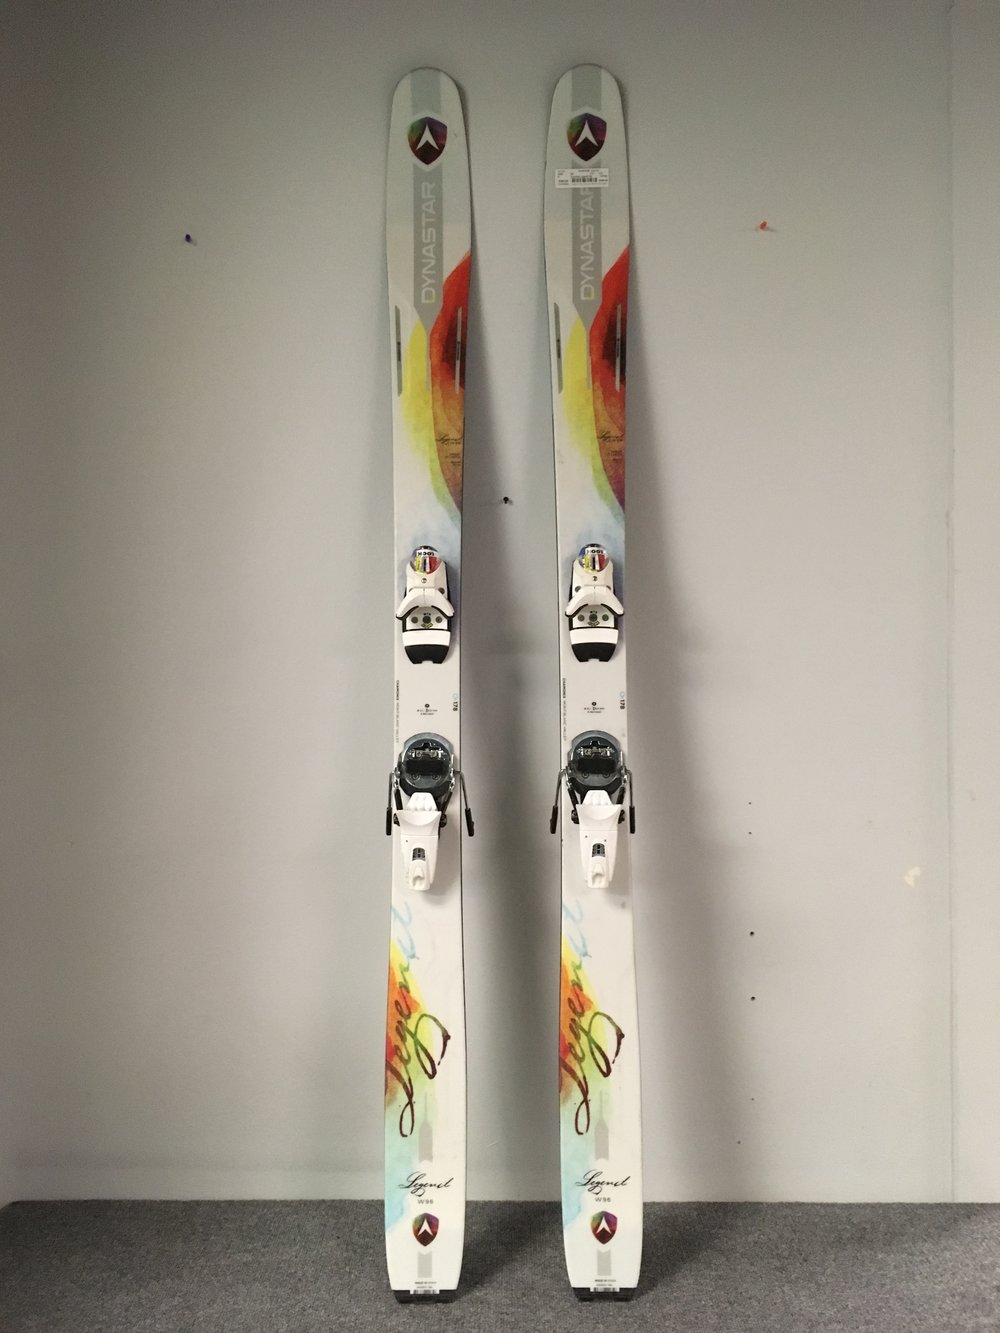 Dynastar's Legend 96 is back this year! A perfect all mountain ski with Look's Dual WTR 14 binding mounted to it. The Sticks are listed at $649 (without bindings) but we have the complete set up priced at $399! The length is 178.